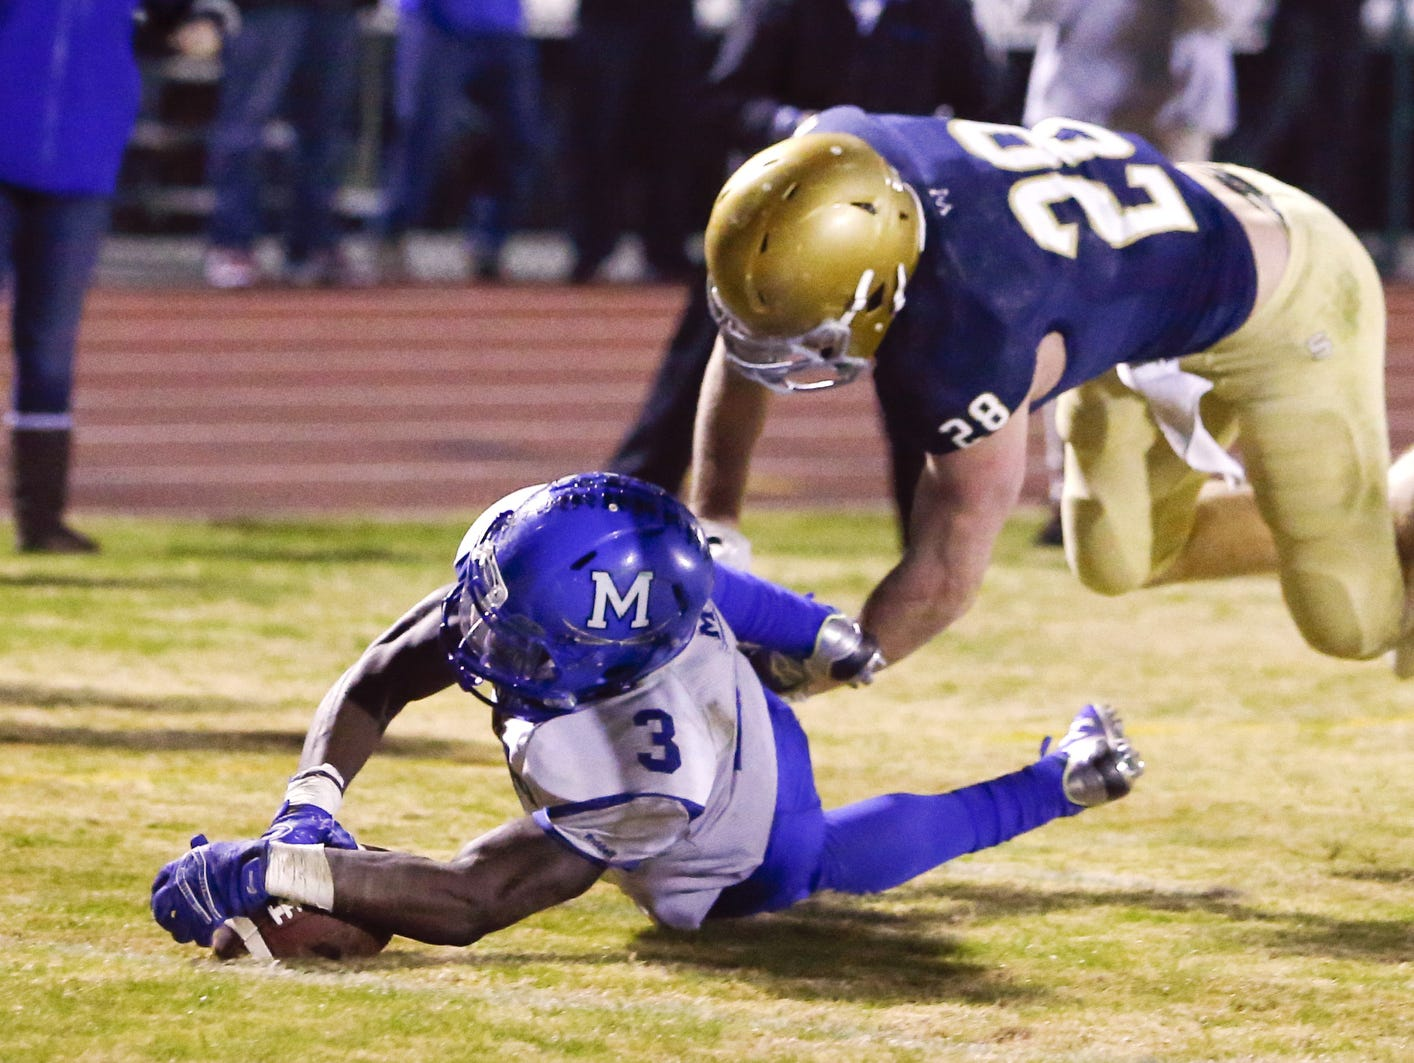 Middletown's Kedrick Whitehead falls on his own fumble for touchdown as Salesianum's Colby Reeder defends in the first quarter of a DIAA Division I state tournament semifinal at Baynard Stadium Friday.